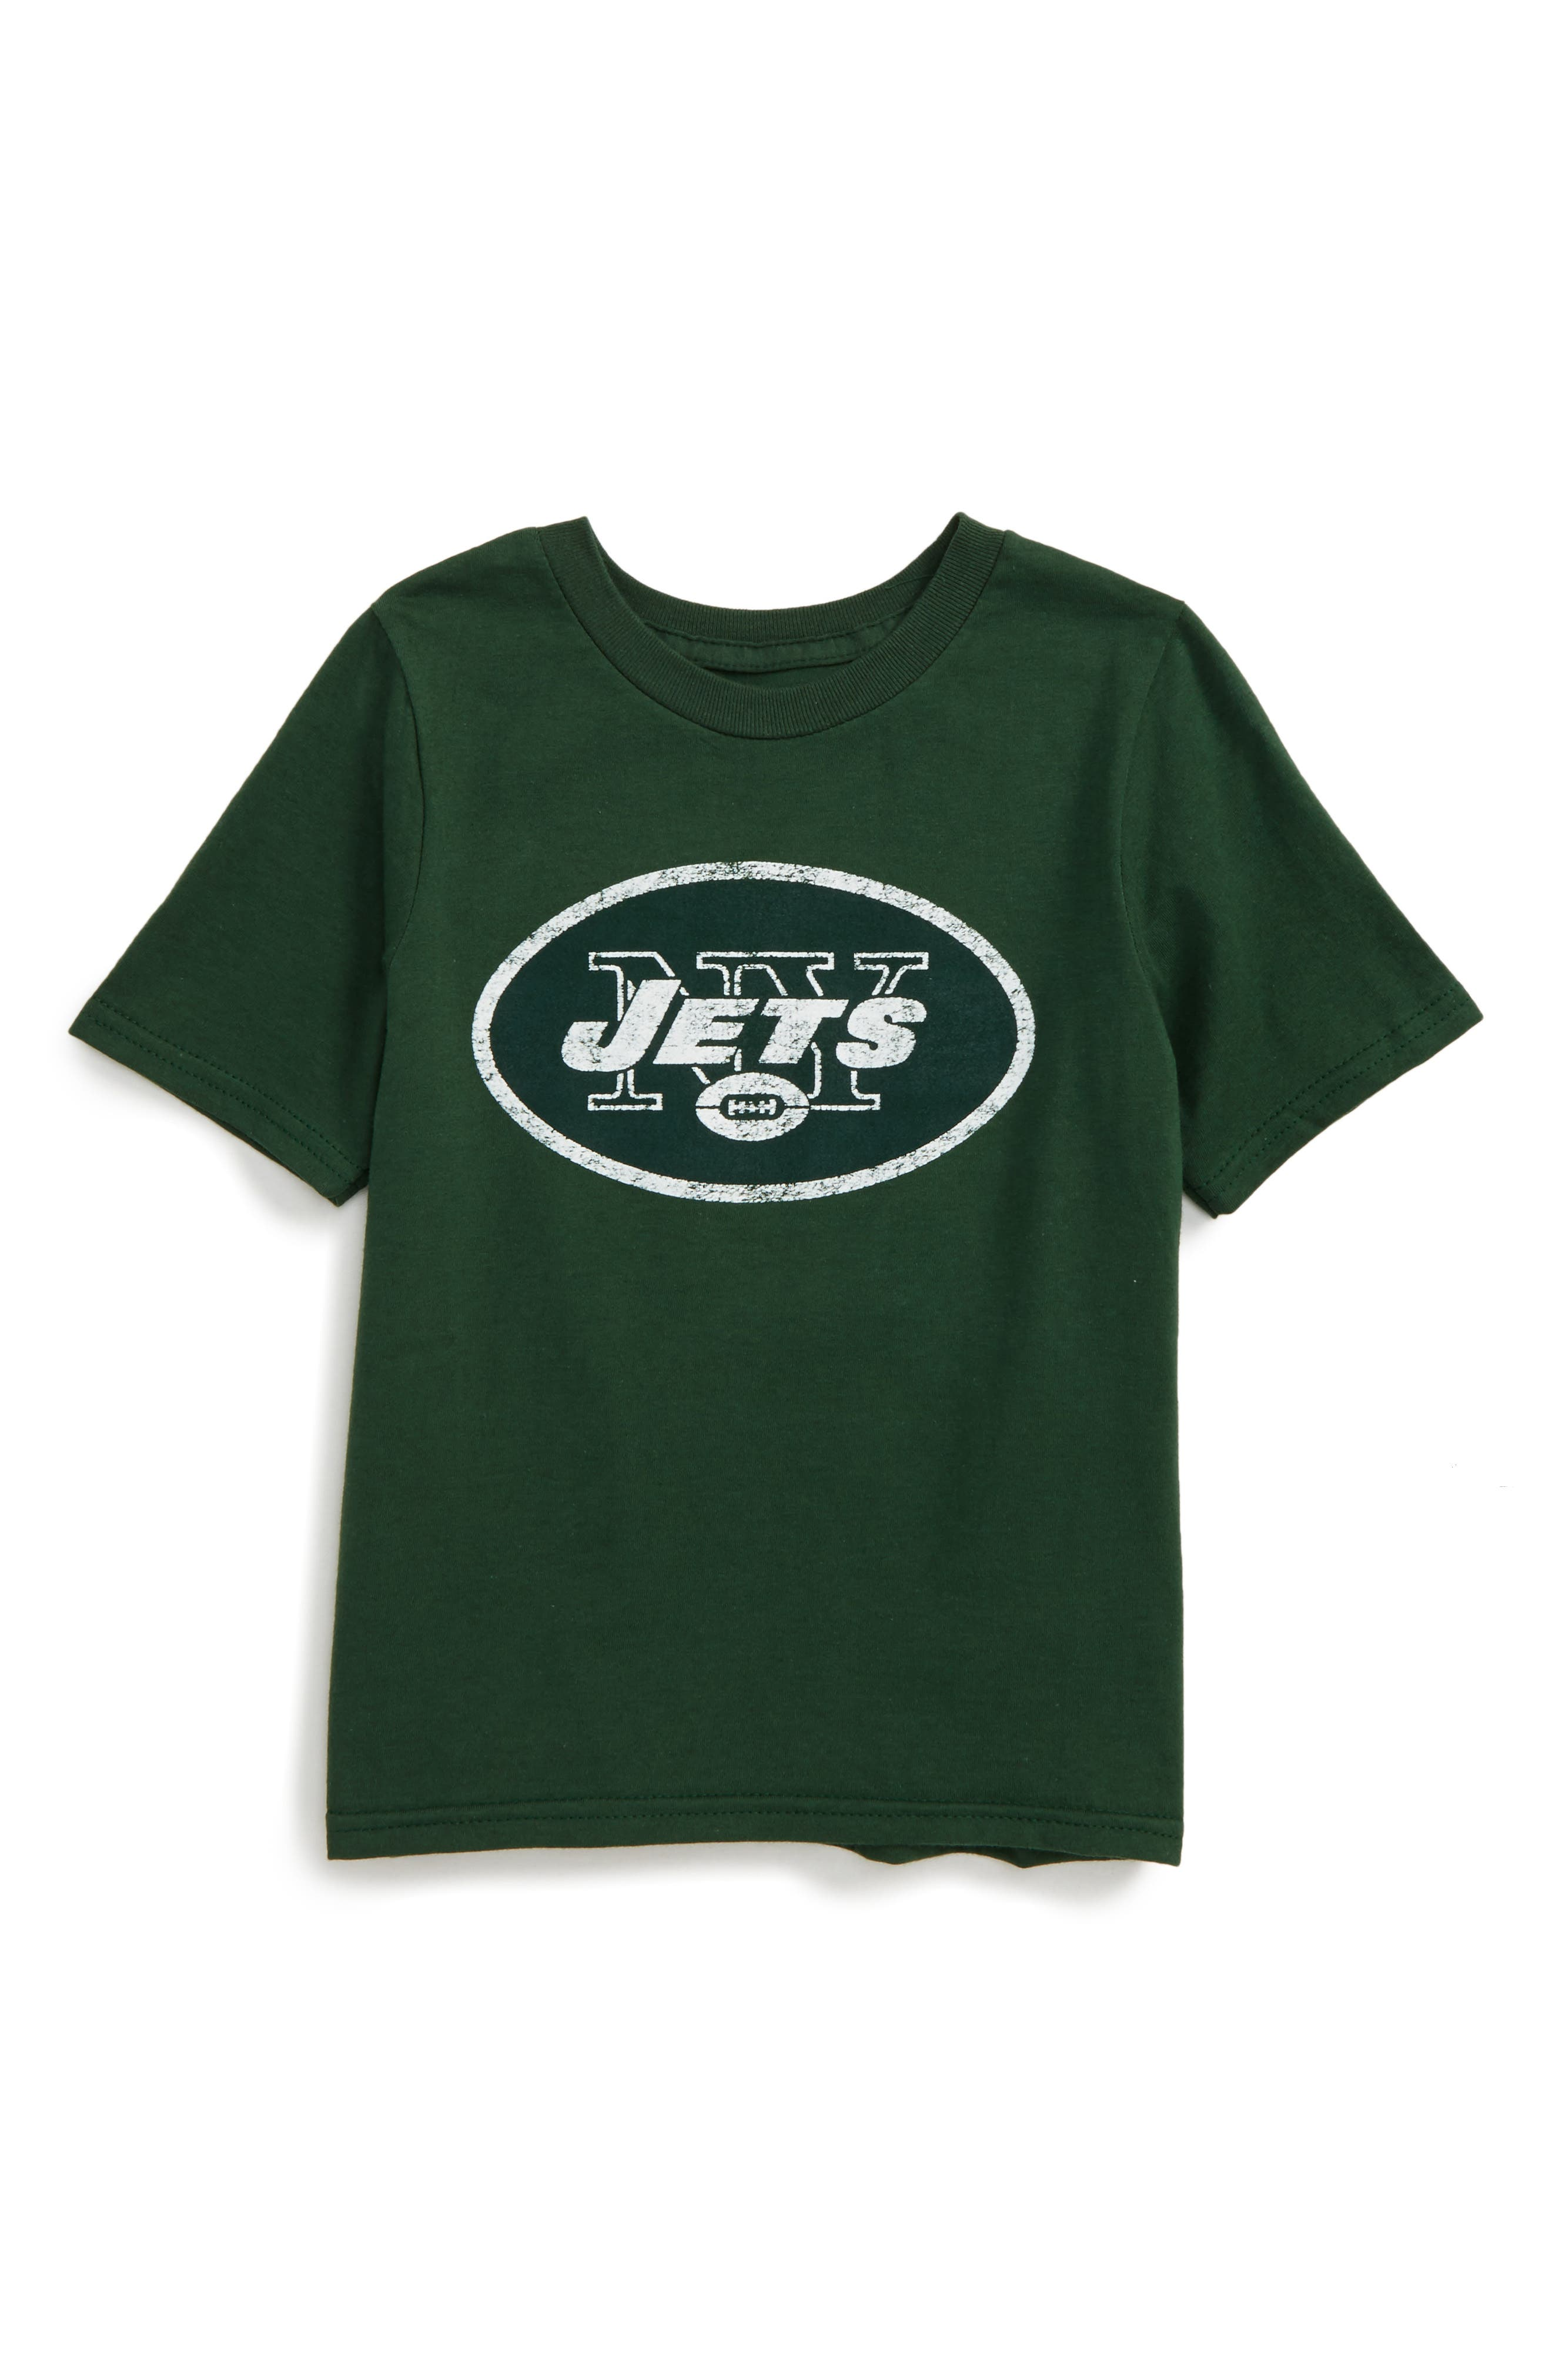 Main Image - Outerstuff NFL - New York Jets Distressed Logo T-Shirt (Baby Boys, Toddler Boys & Little Boys)